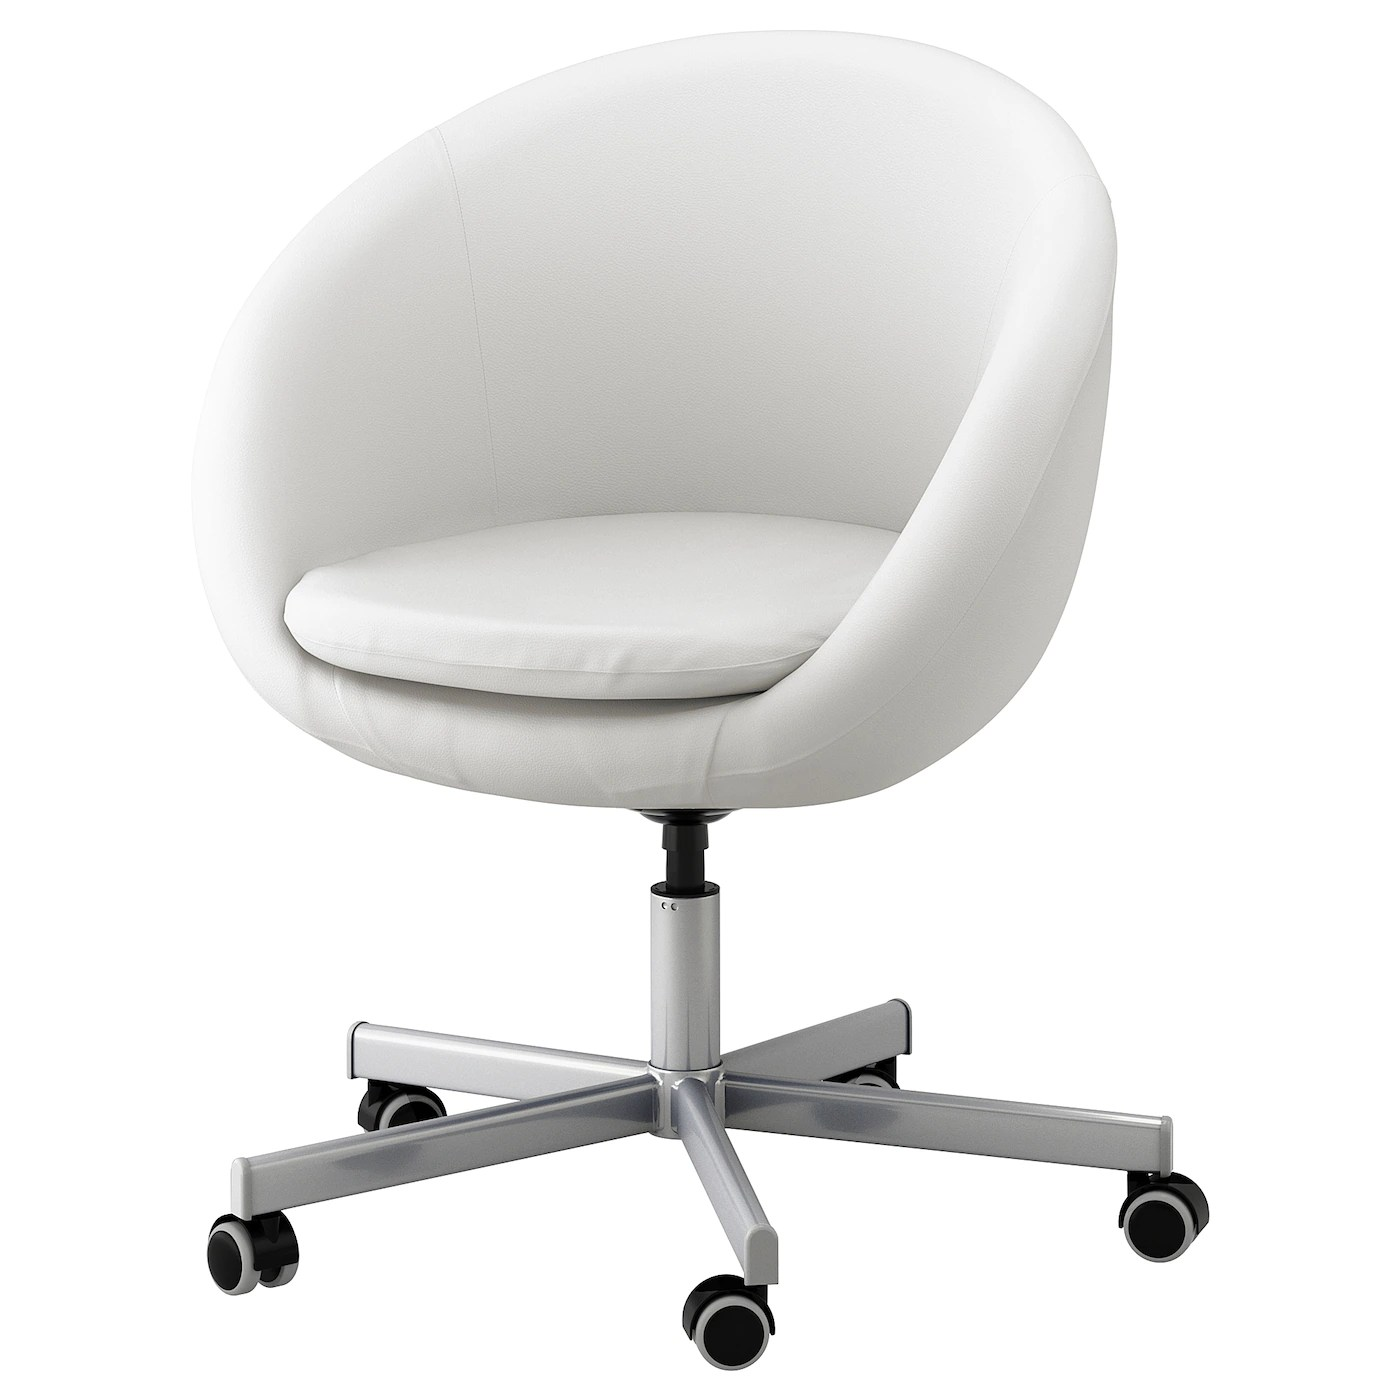 Swival Chairs Skruvsta Swivel Chair Idhult White Ikea